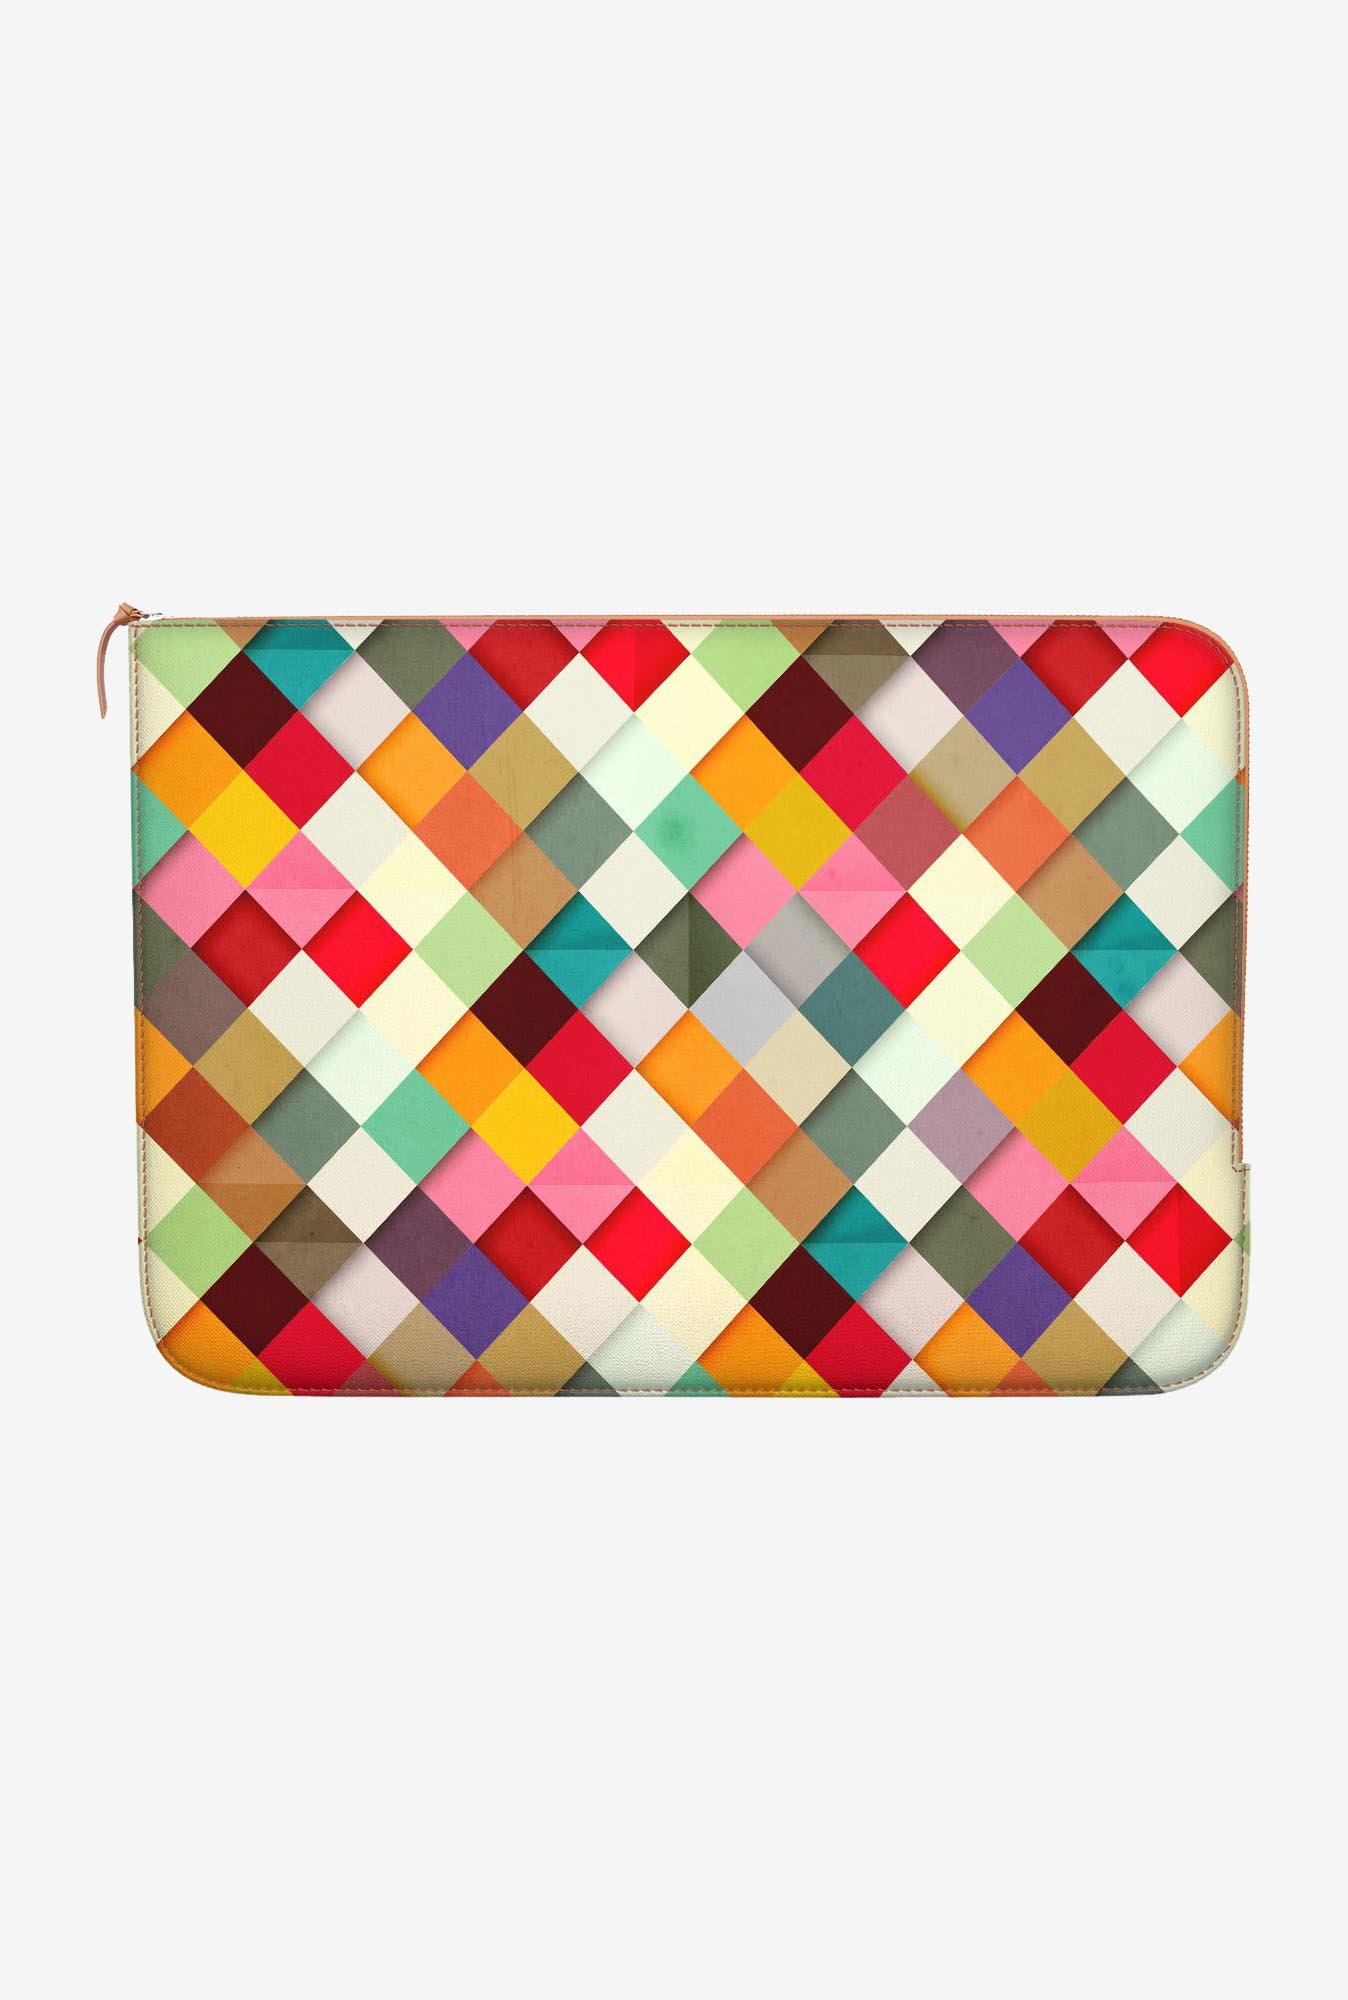 DailyObjects Pass this On MacBook 12 Zippered Sleeve